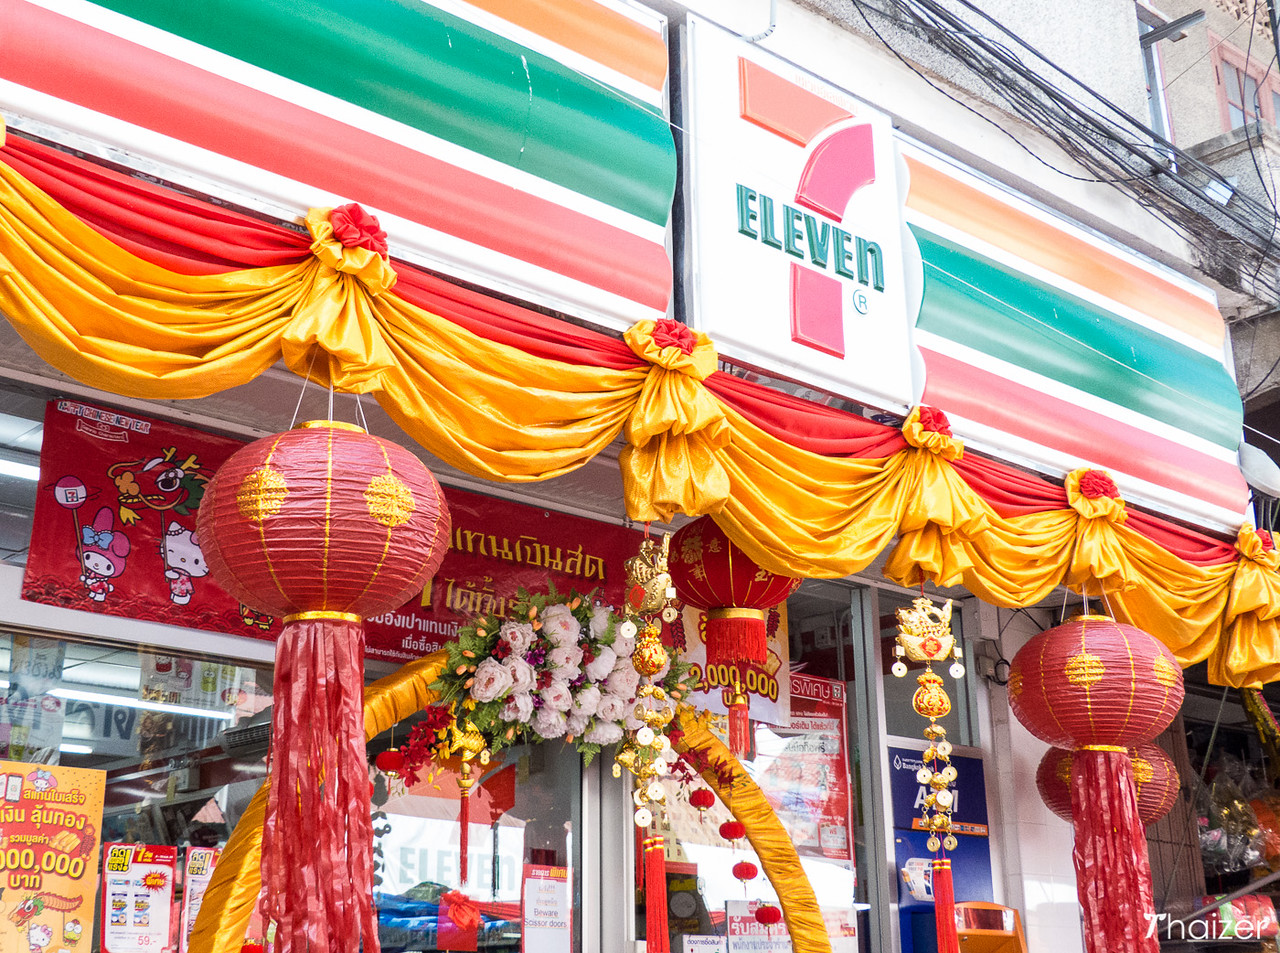 7-Eleven outside Waworot Market in Chiang Mai decorated for Chinese New Year